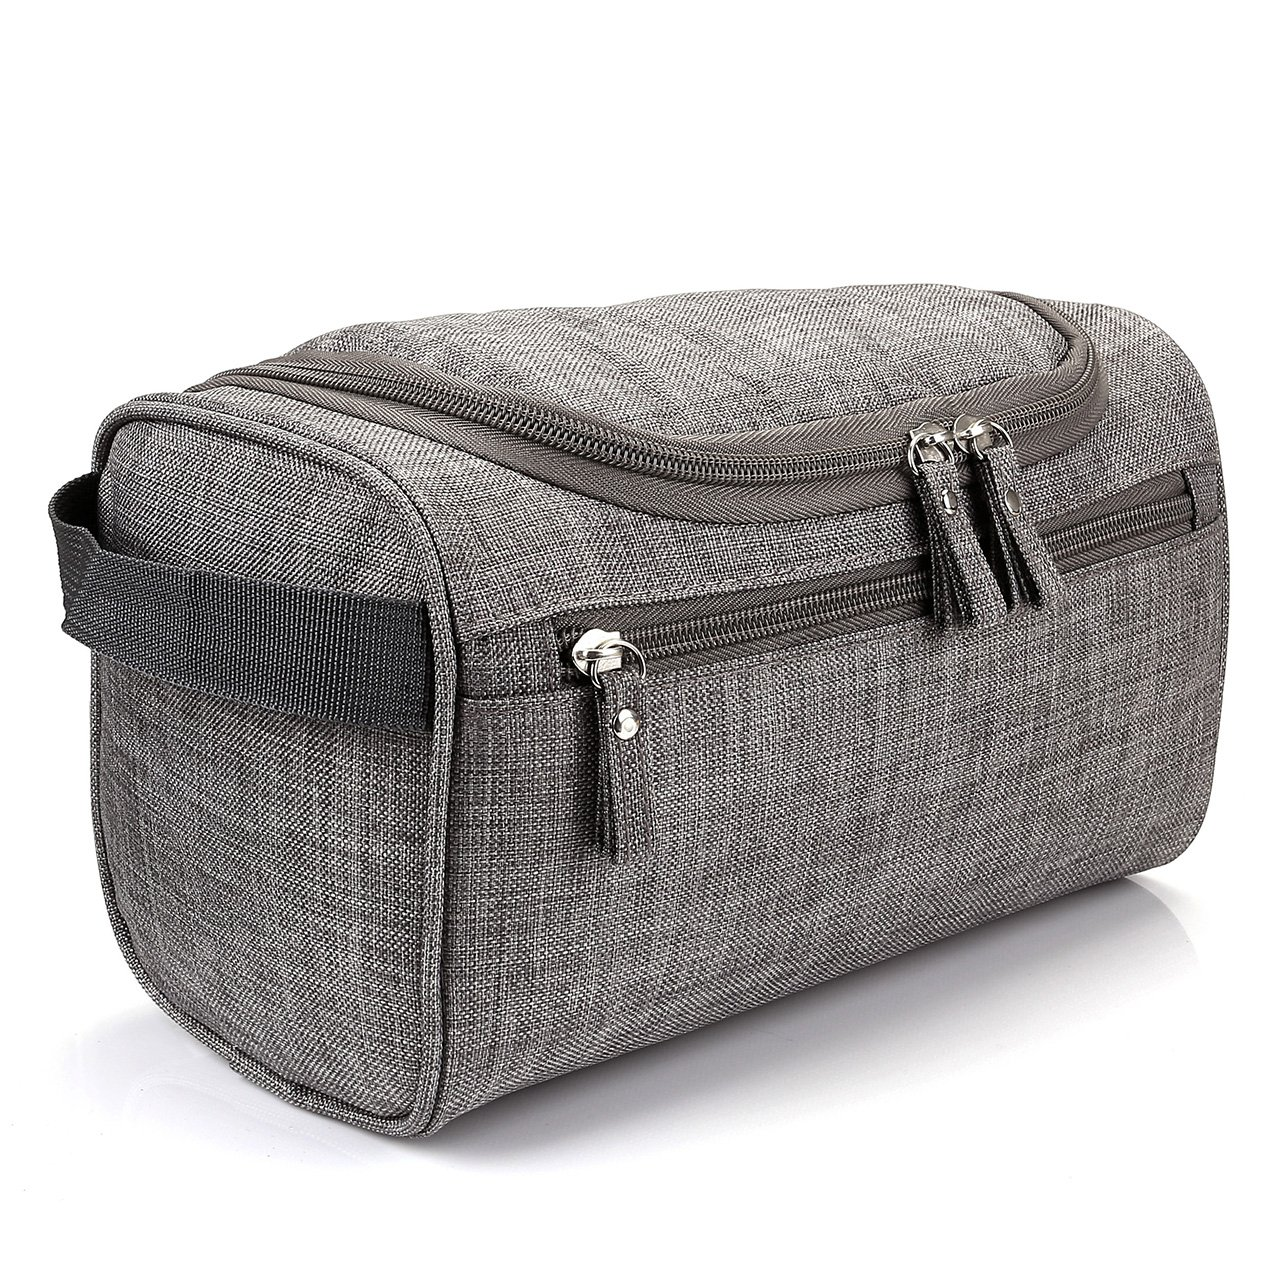 CozyCabin Travel Toiletry Bag, Hanging Waterproof Dopp Kit for Shaving Makeup Accessories, Men s Cosmetic Organizer with Large Capacity for Gym, Vacation, Business Trip Frosted Grey